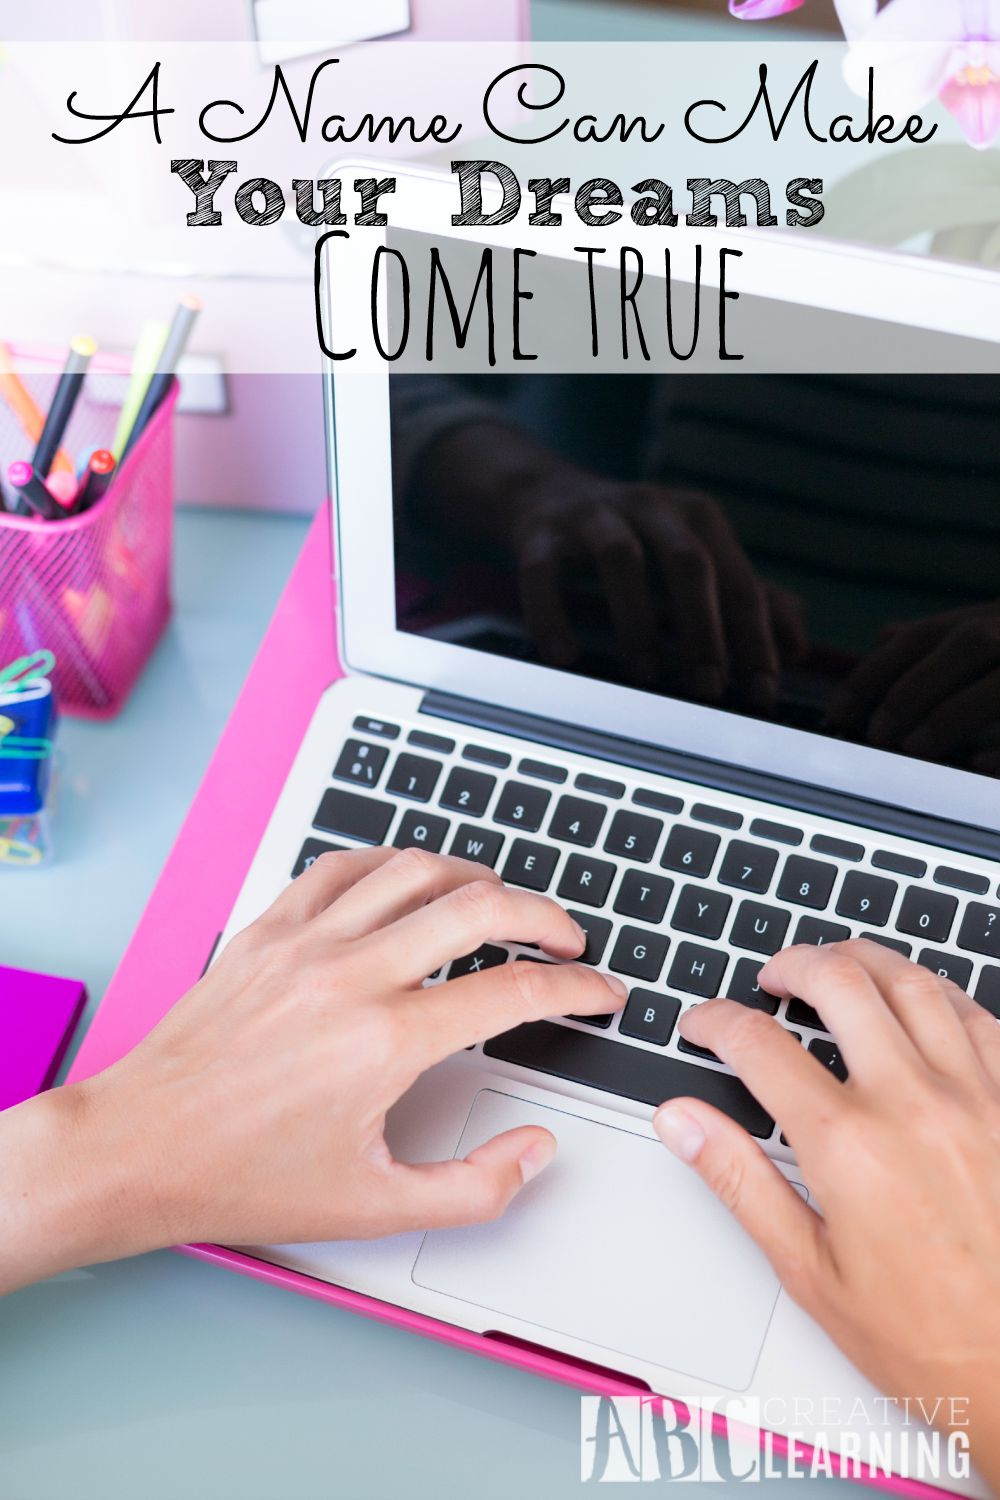 A Name Can Make Your Dreams Come True when creating an online presence through blogging or retail.